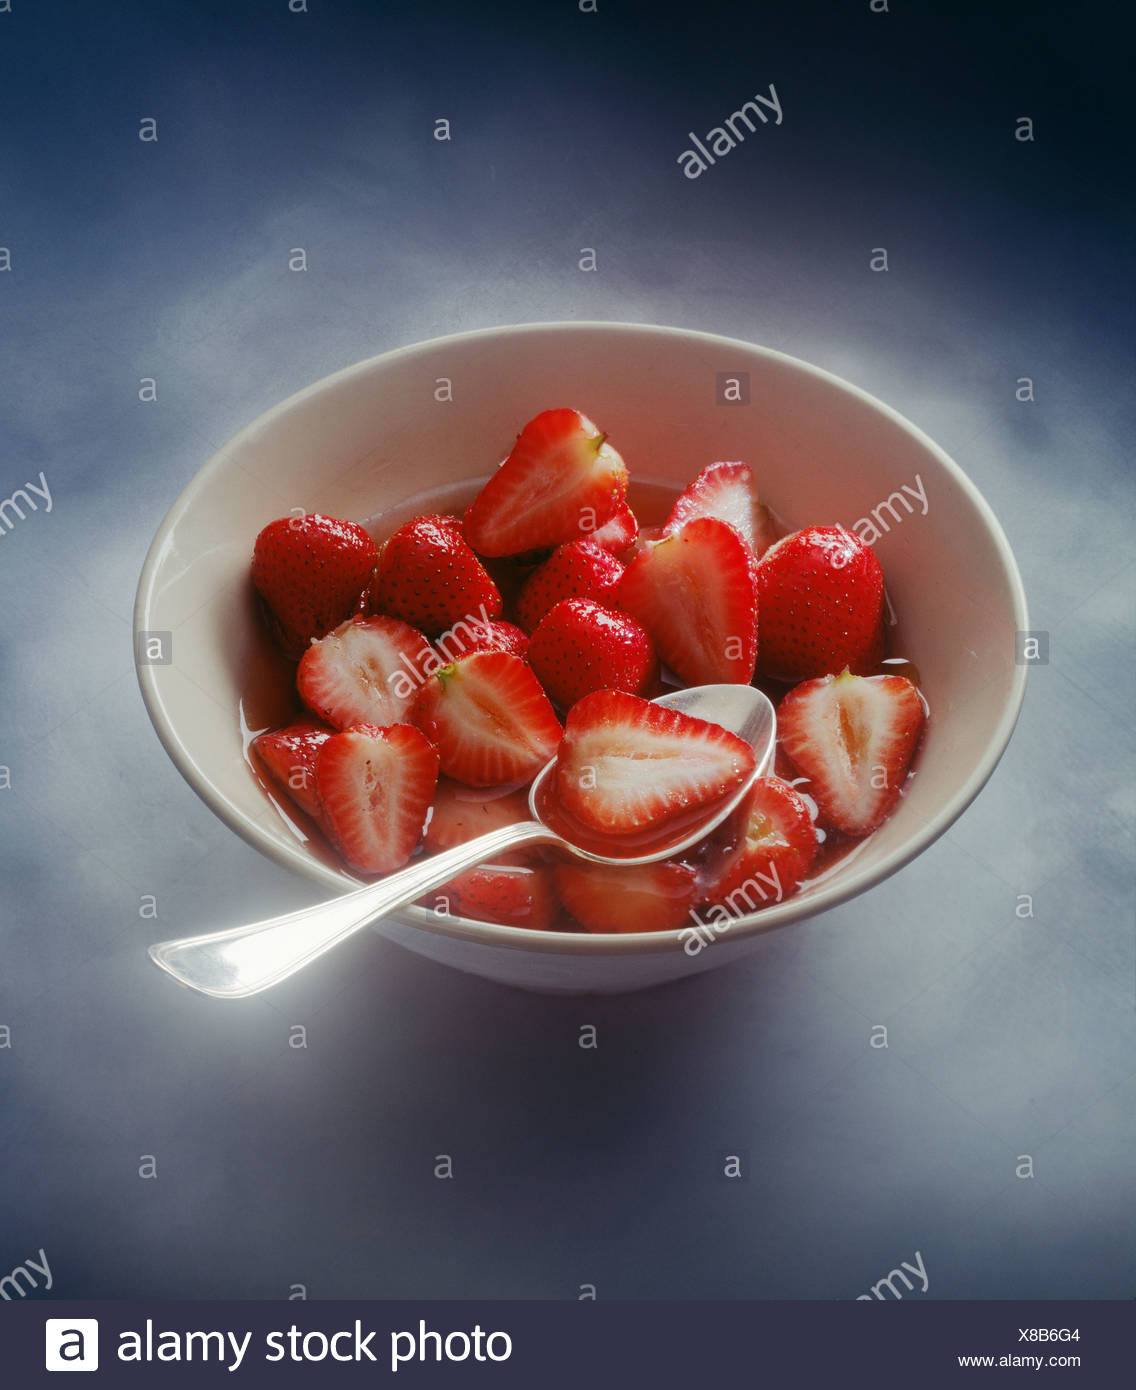 bowl of strawberries in sirup - Stock Image